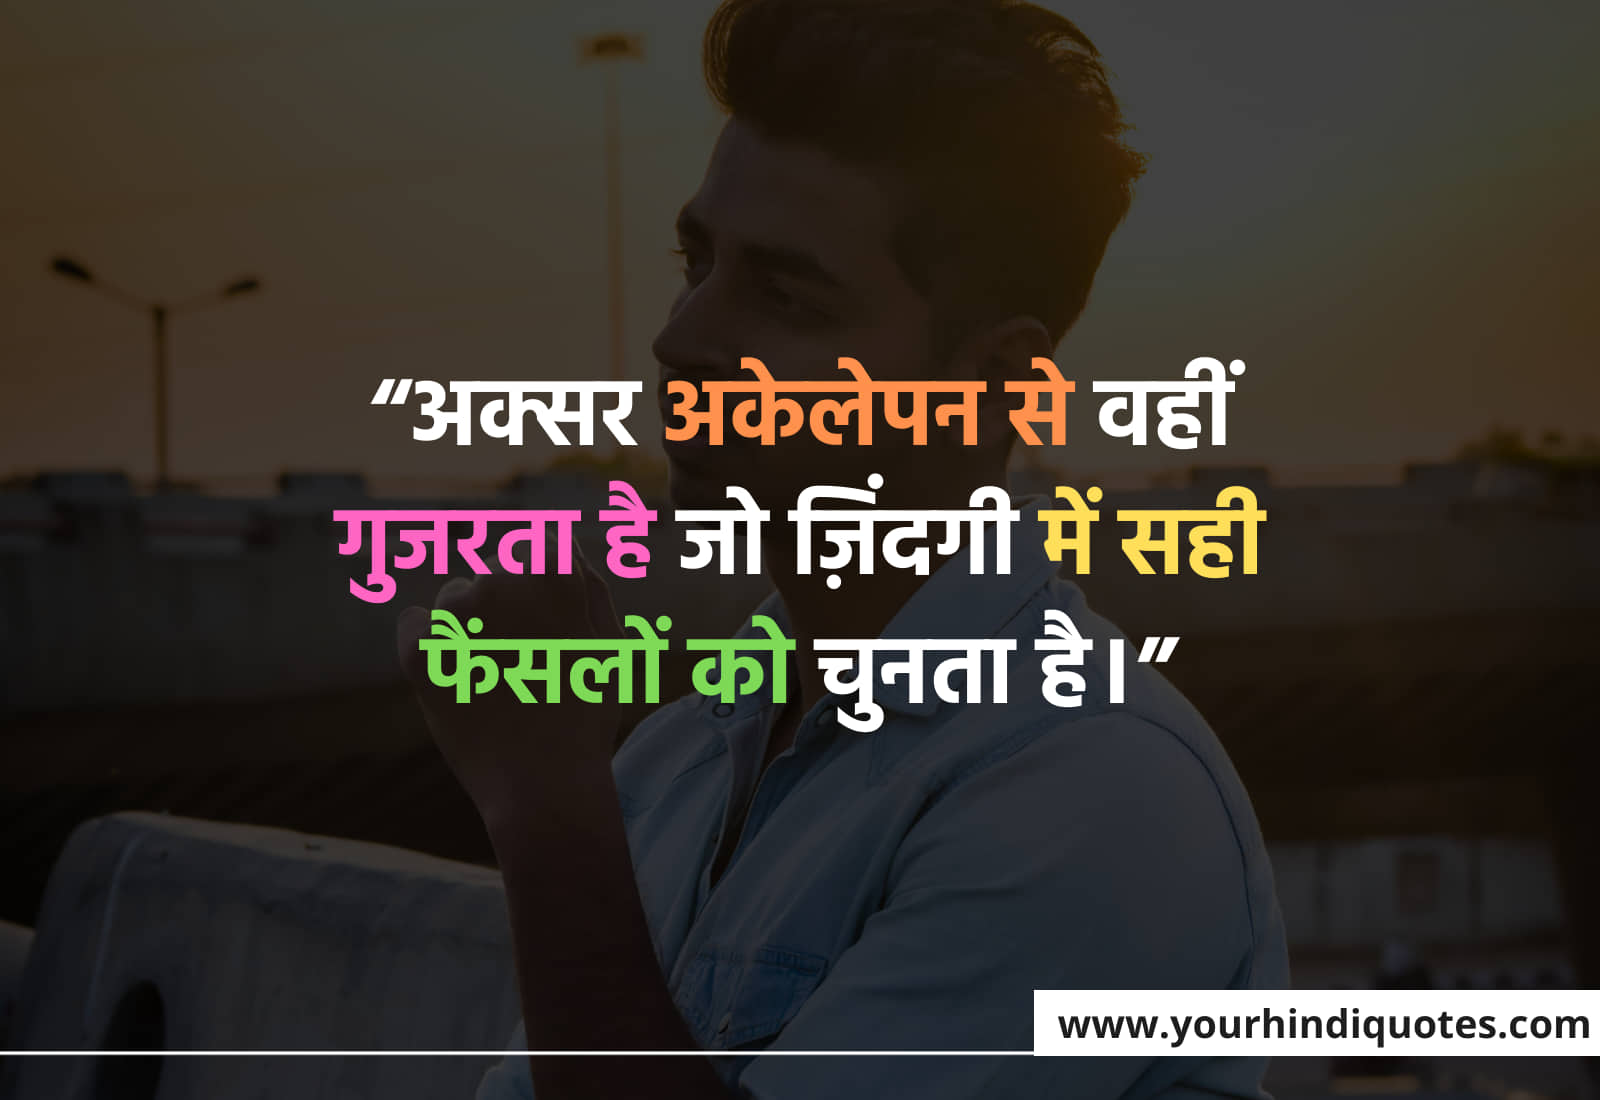 Hindi Quotes For Motivation